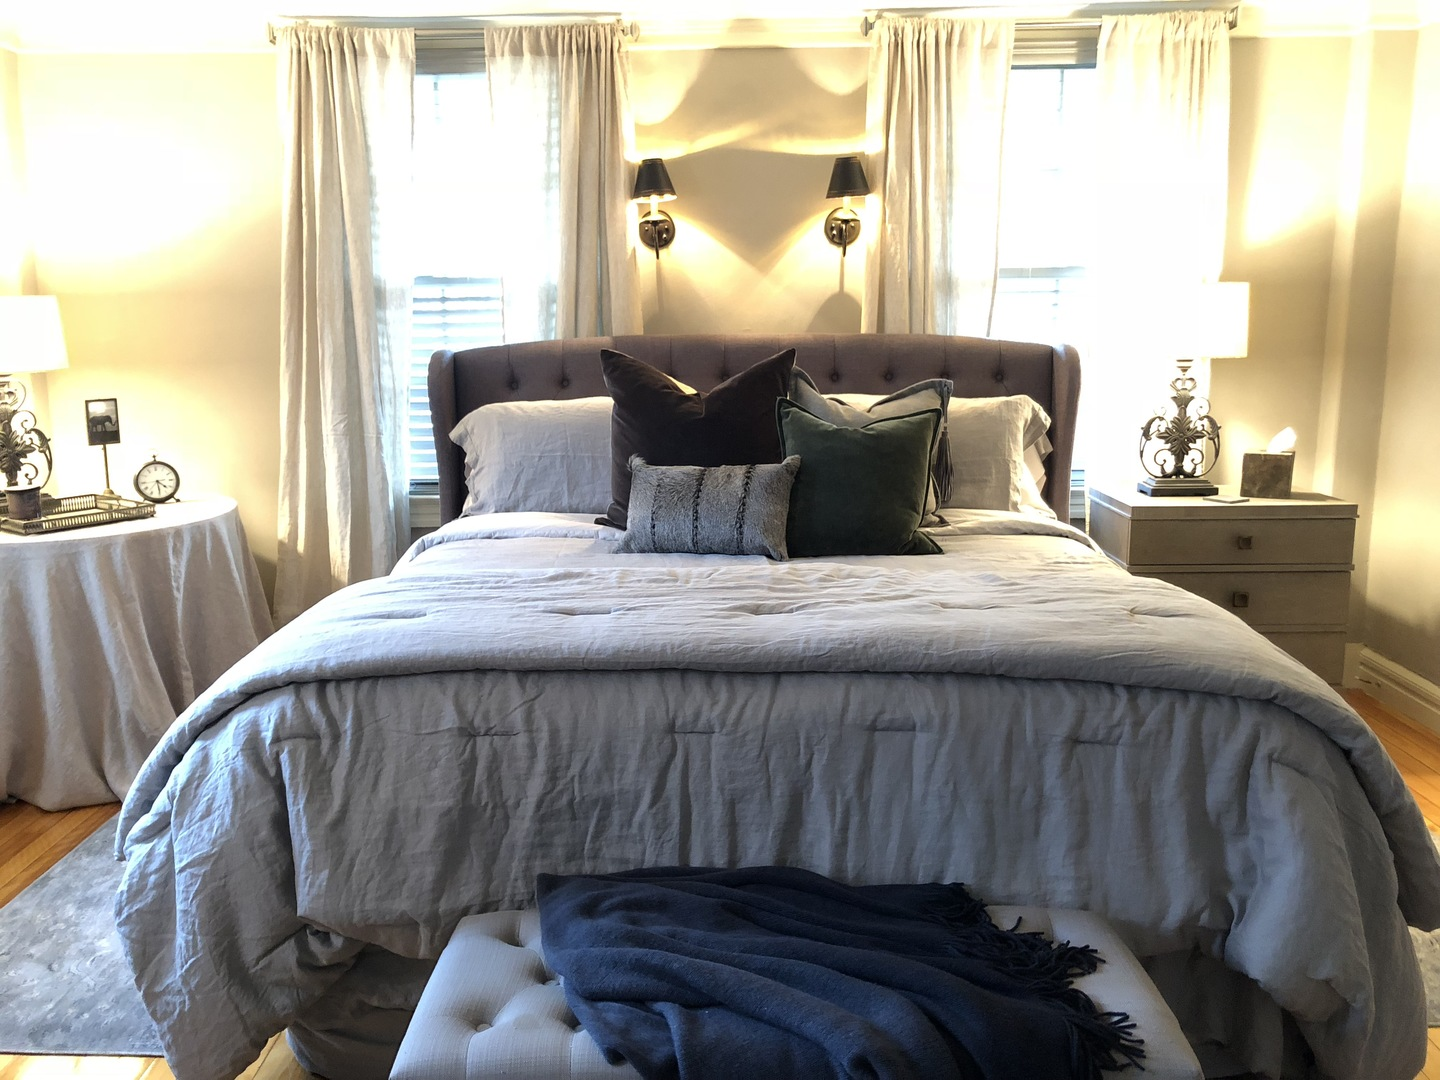 A bedroom with a large bed sitting in a room at The Watson Boutique Bed & Breakfast.